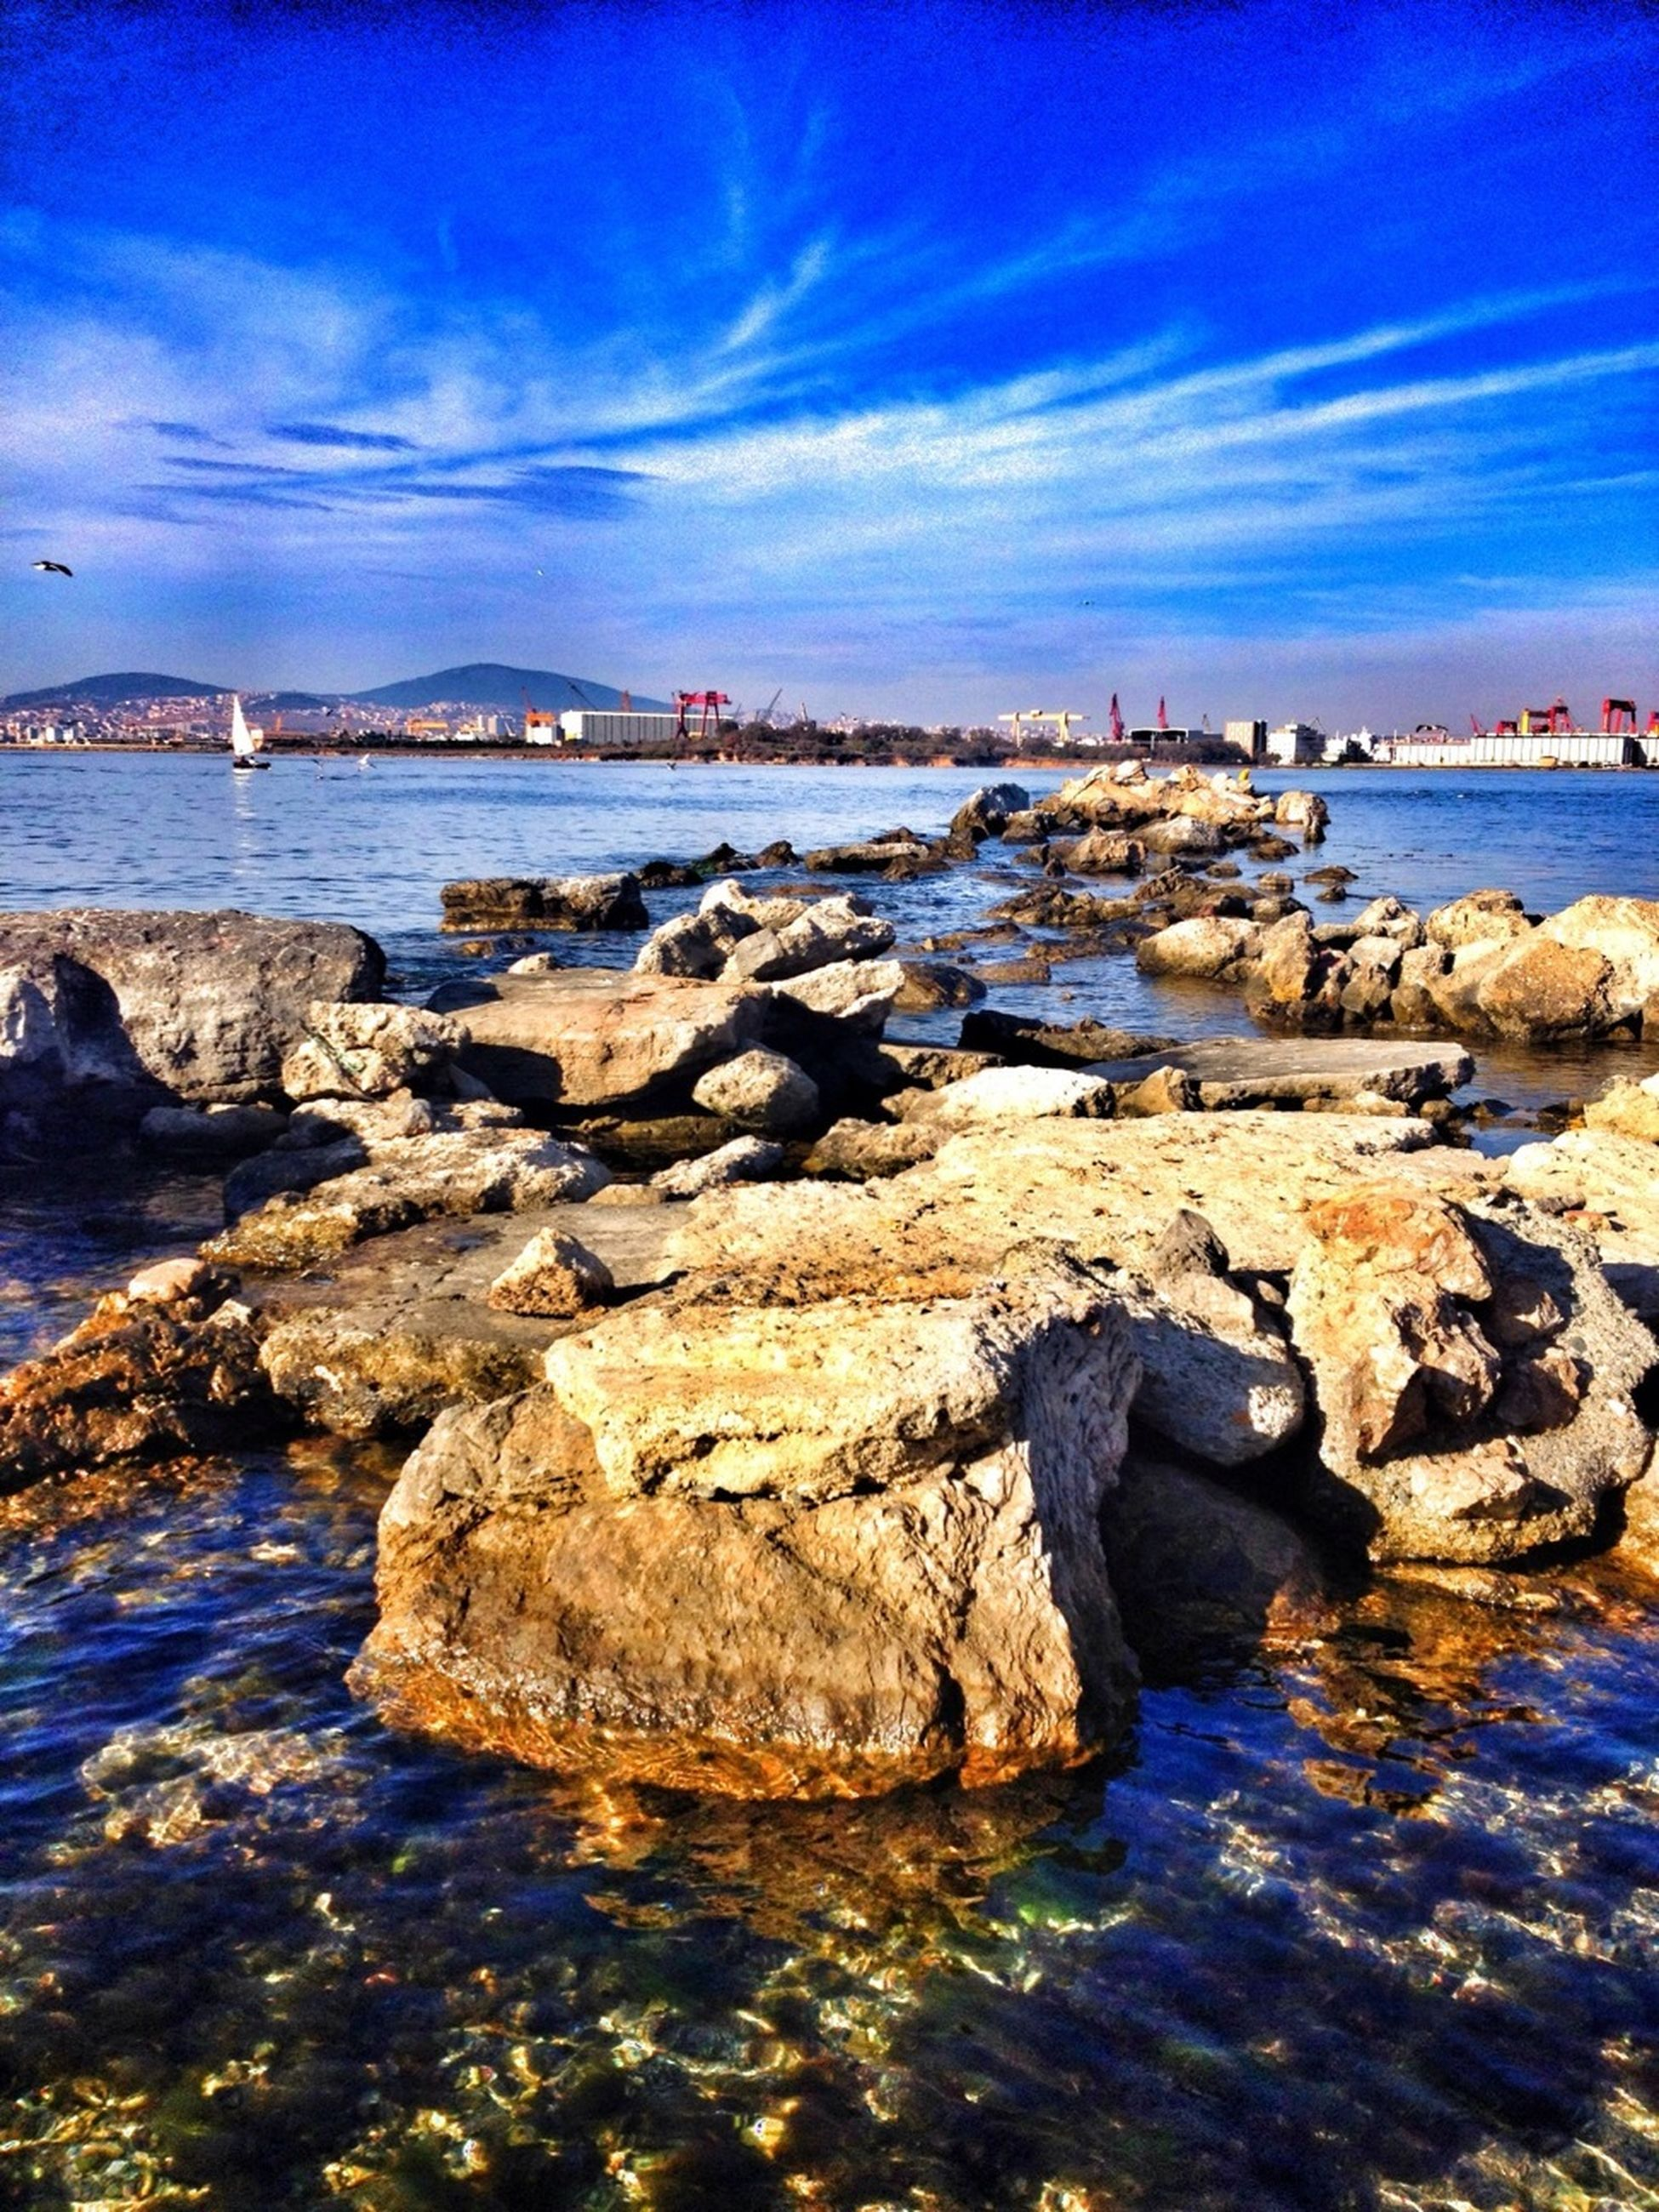 water, sea, sky, blue, tranquil scene, rock - object, tranquility, scenics, waterfront, beauty in nature, cloud - sky, beach, nature, cloud, rippled, shore, idyllic, outdoors, reflection, rock